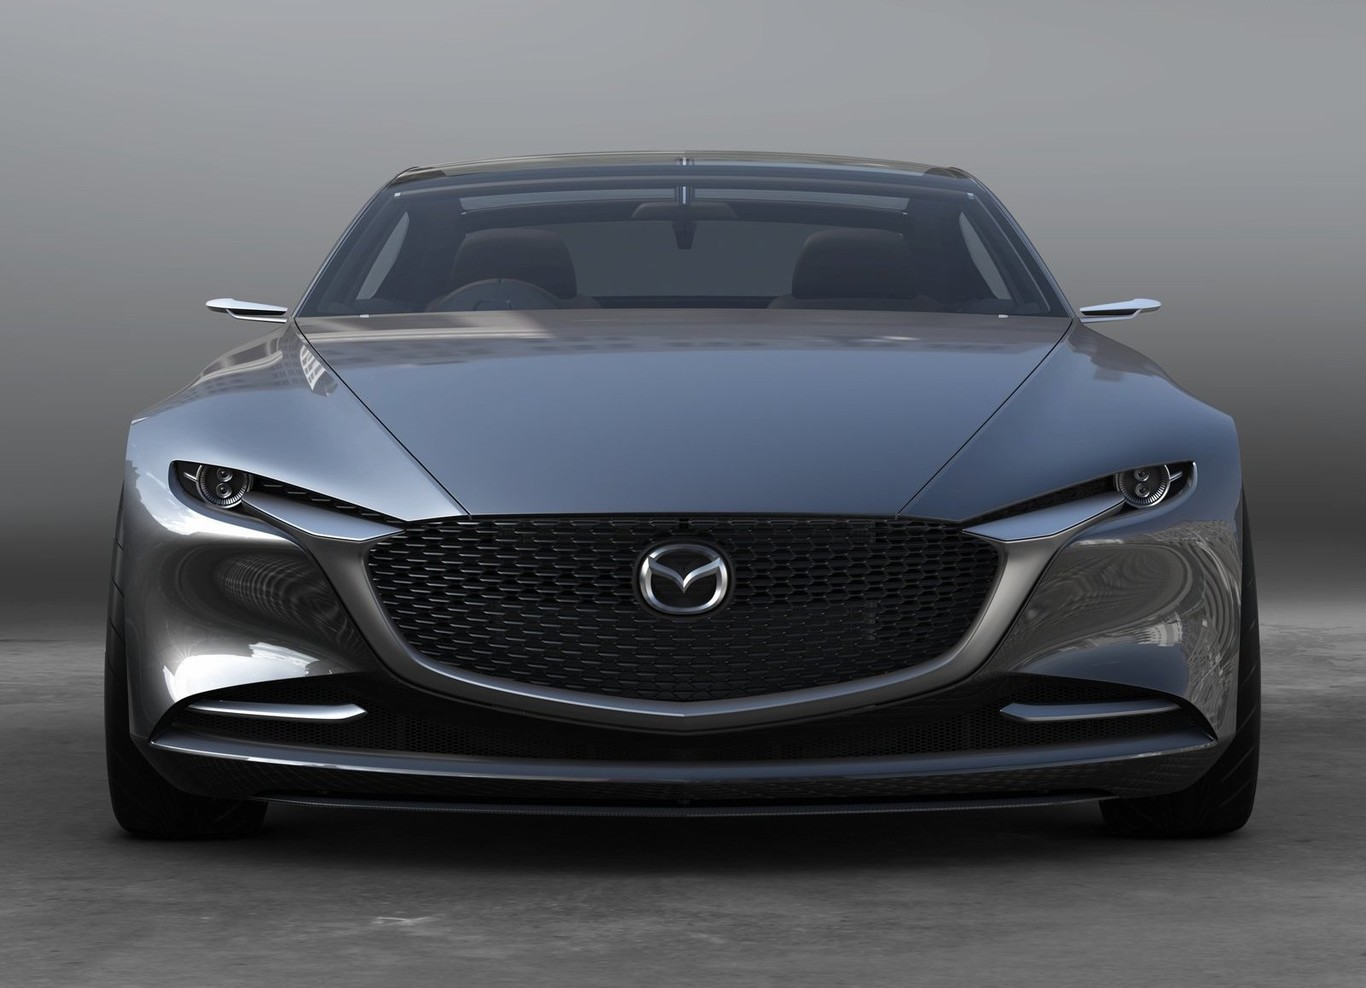 2021 Mazda 6 Coupe Images